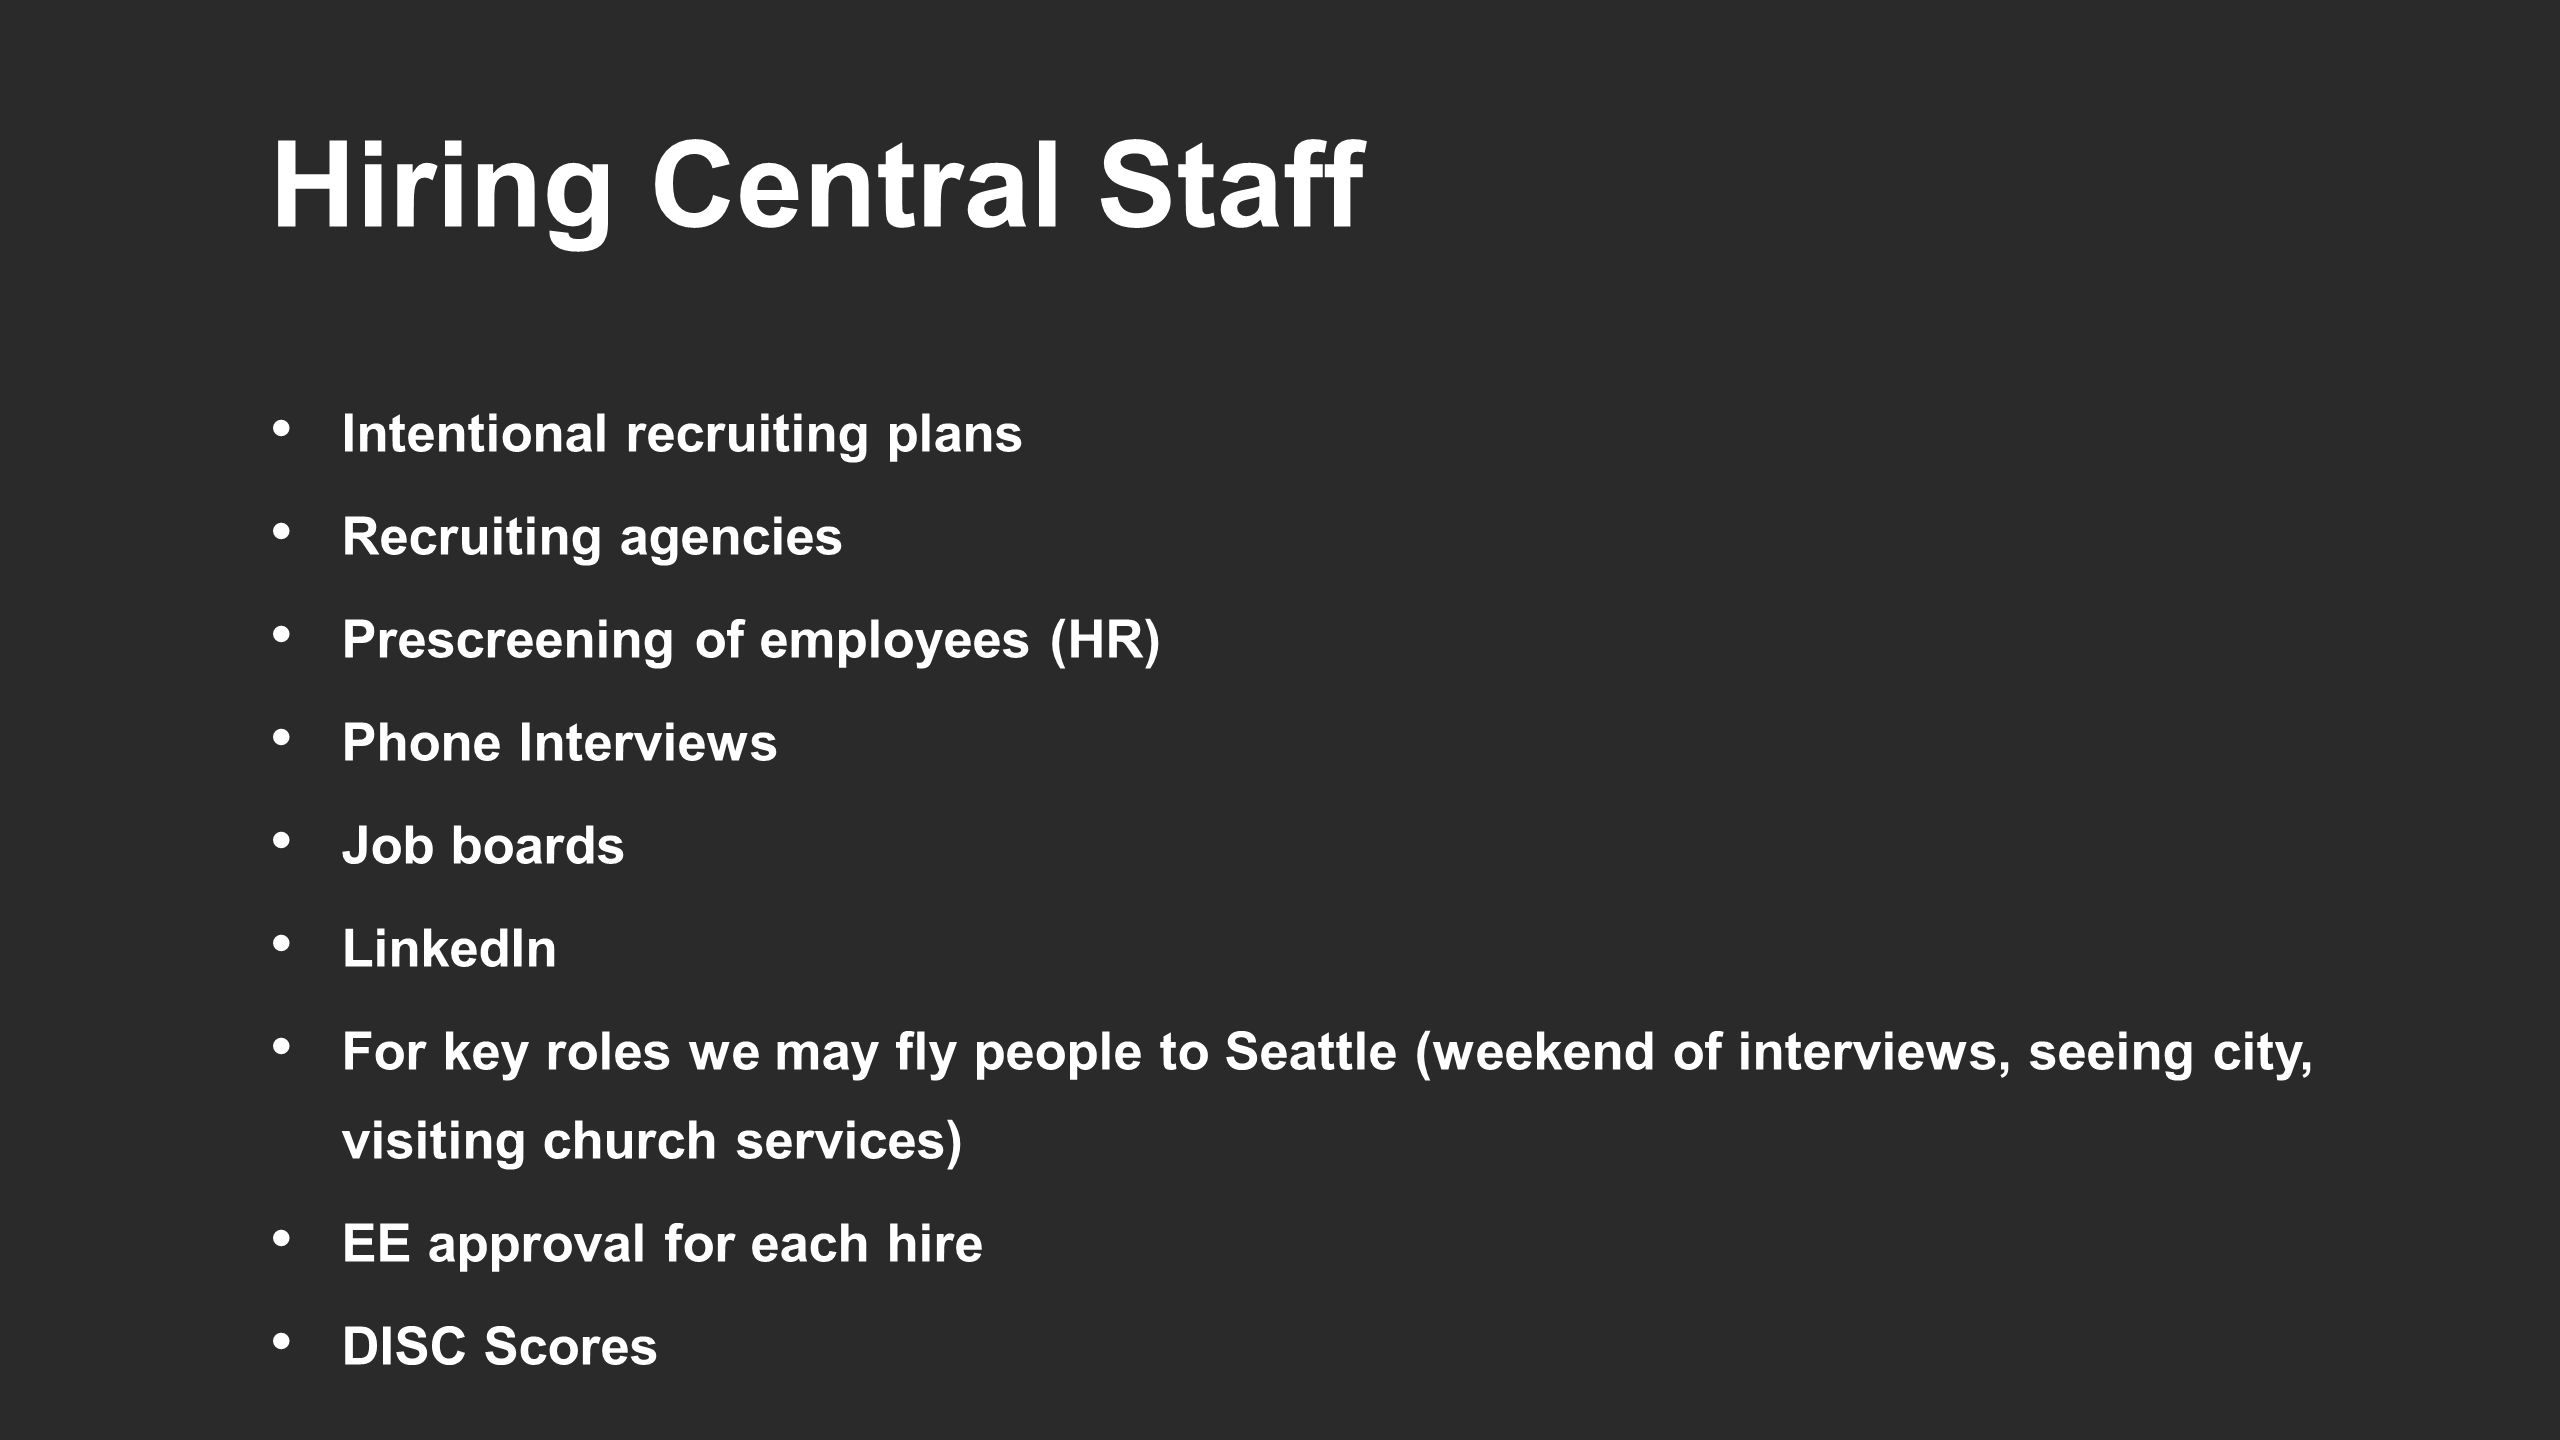 Hiring Central Staff Intentional recruiting plans Recruiting agencies Prescreening of employees (HR) Phone Interviews Job boards LinkedIn For key roles we may fly people to Seattle (weekend of interviews, seeing city, visiting church services) EE approval for each hire DISC Scores